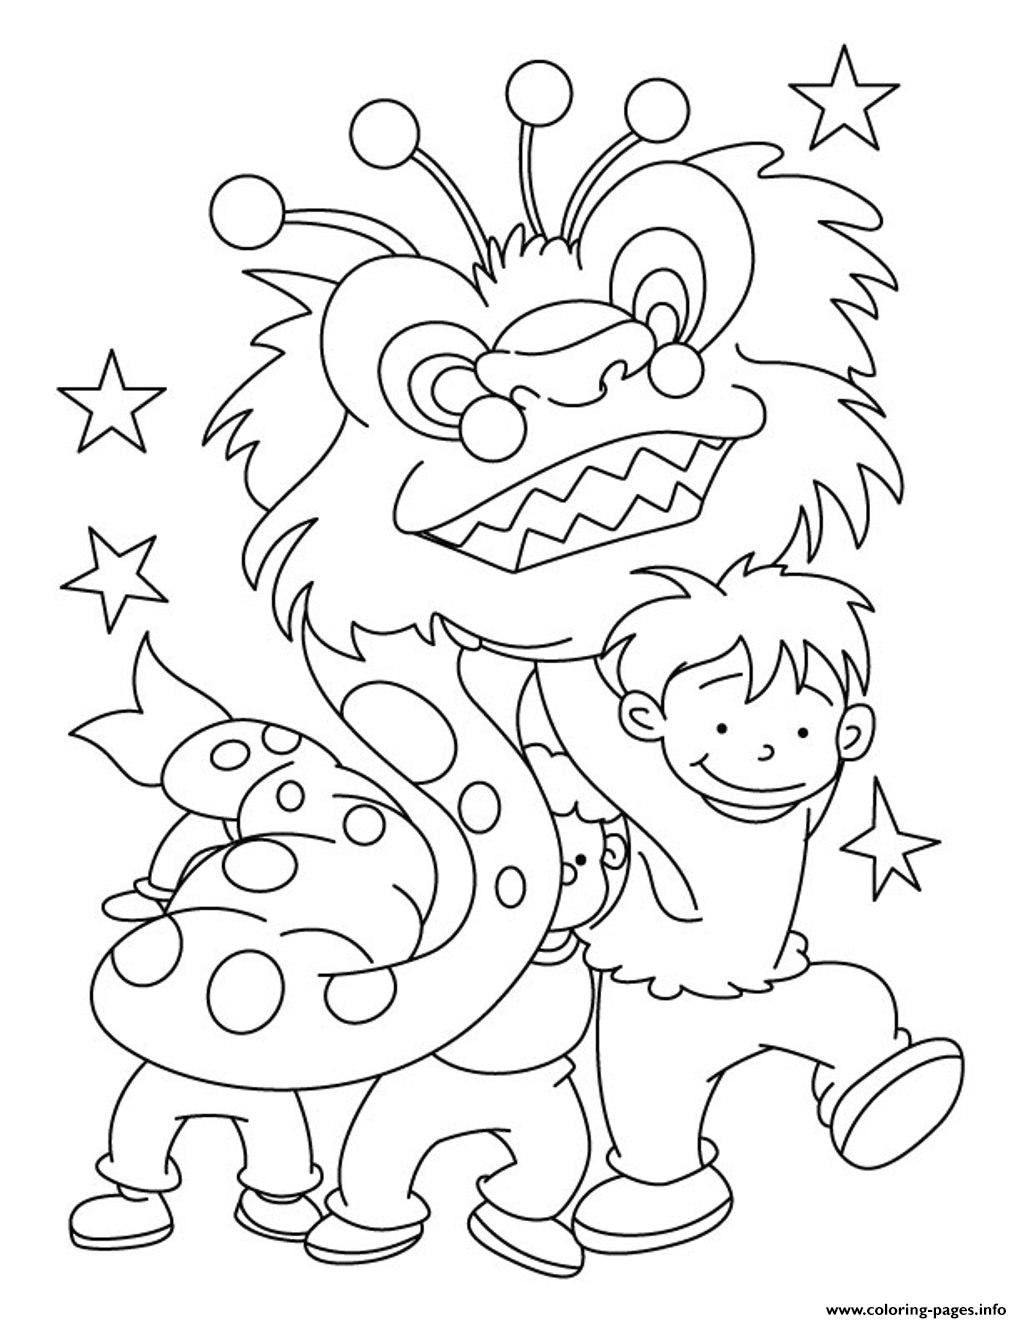 Chinese New Year Dragon Coloring Page Youngandtae Com In 2020 New Year Coloring Pages Chinese New Year Activities Dragon Coloring Page